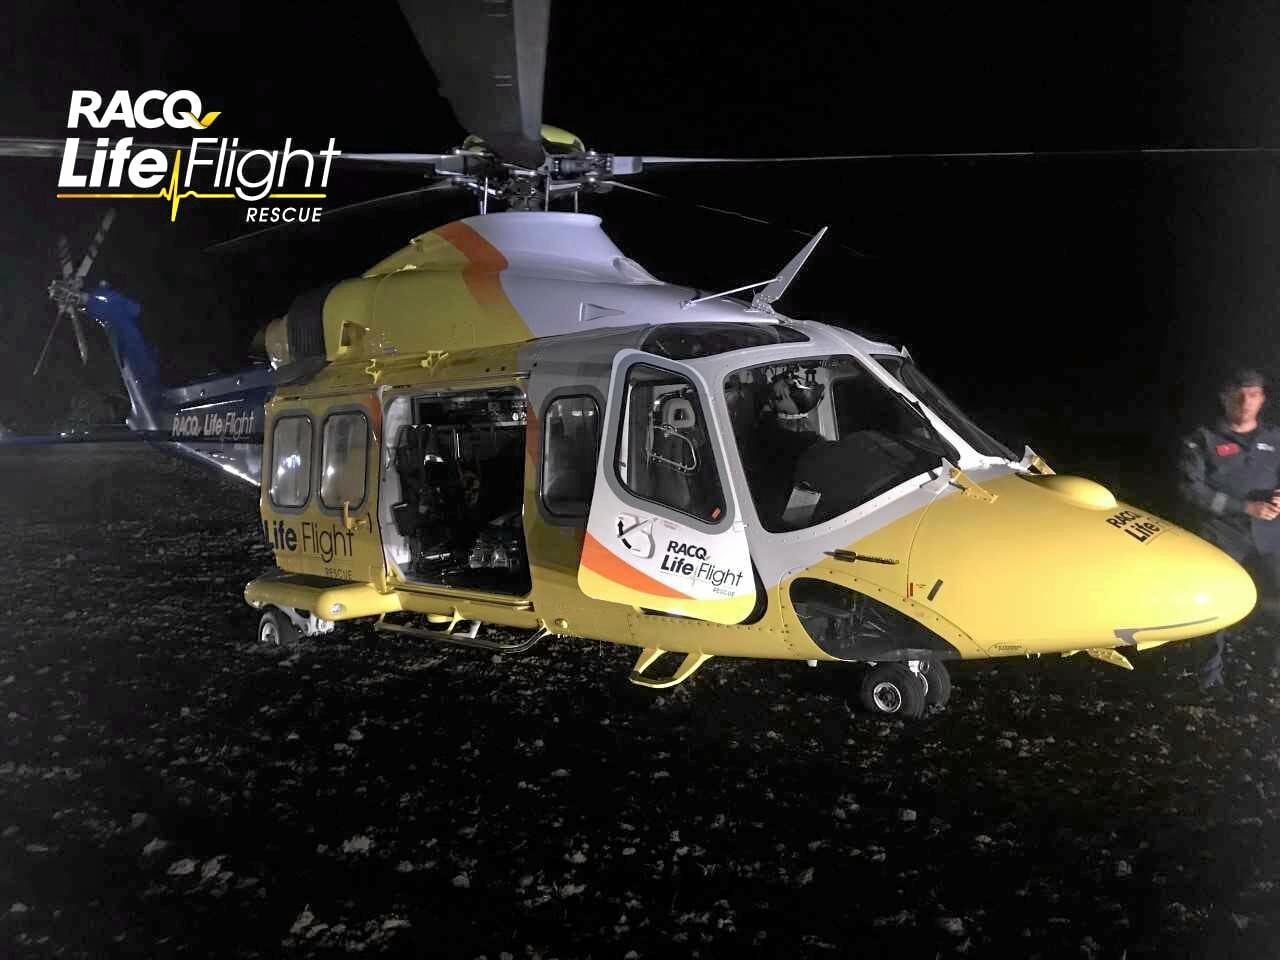 The Brisbane-based RACQ LifeFlight Rescue helicopter was tasked to the scene of the Manumbar Rally.